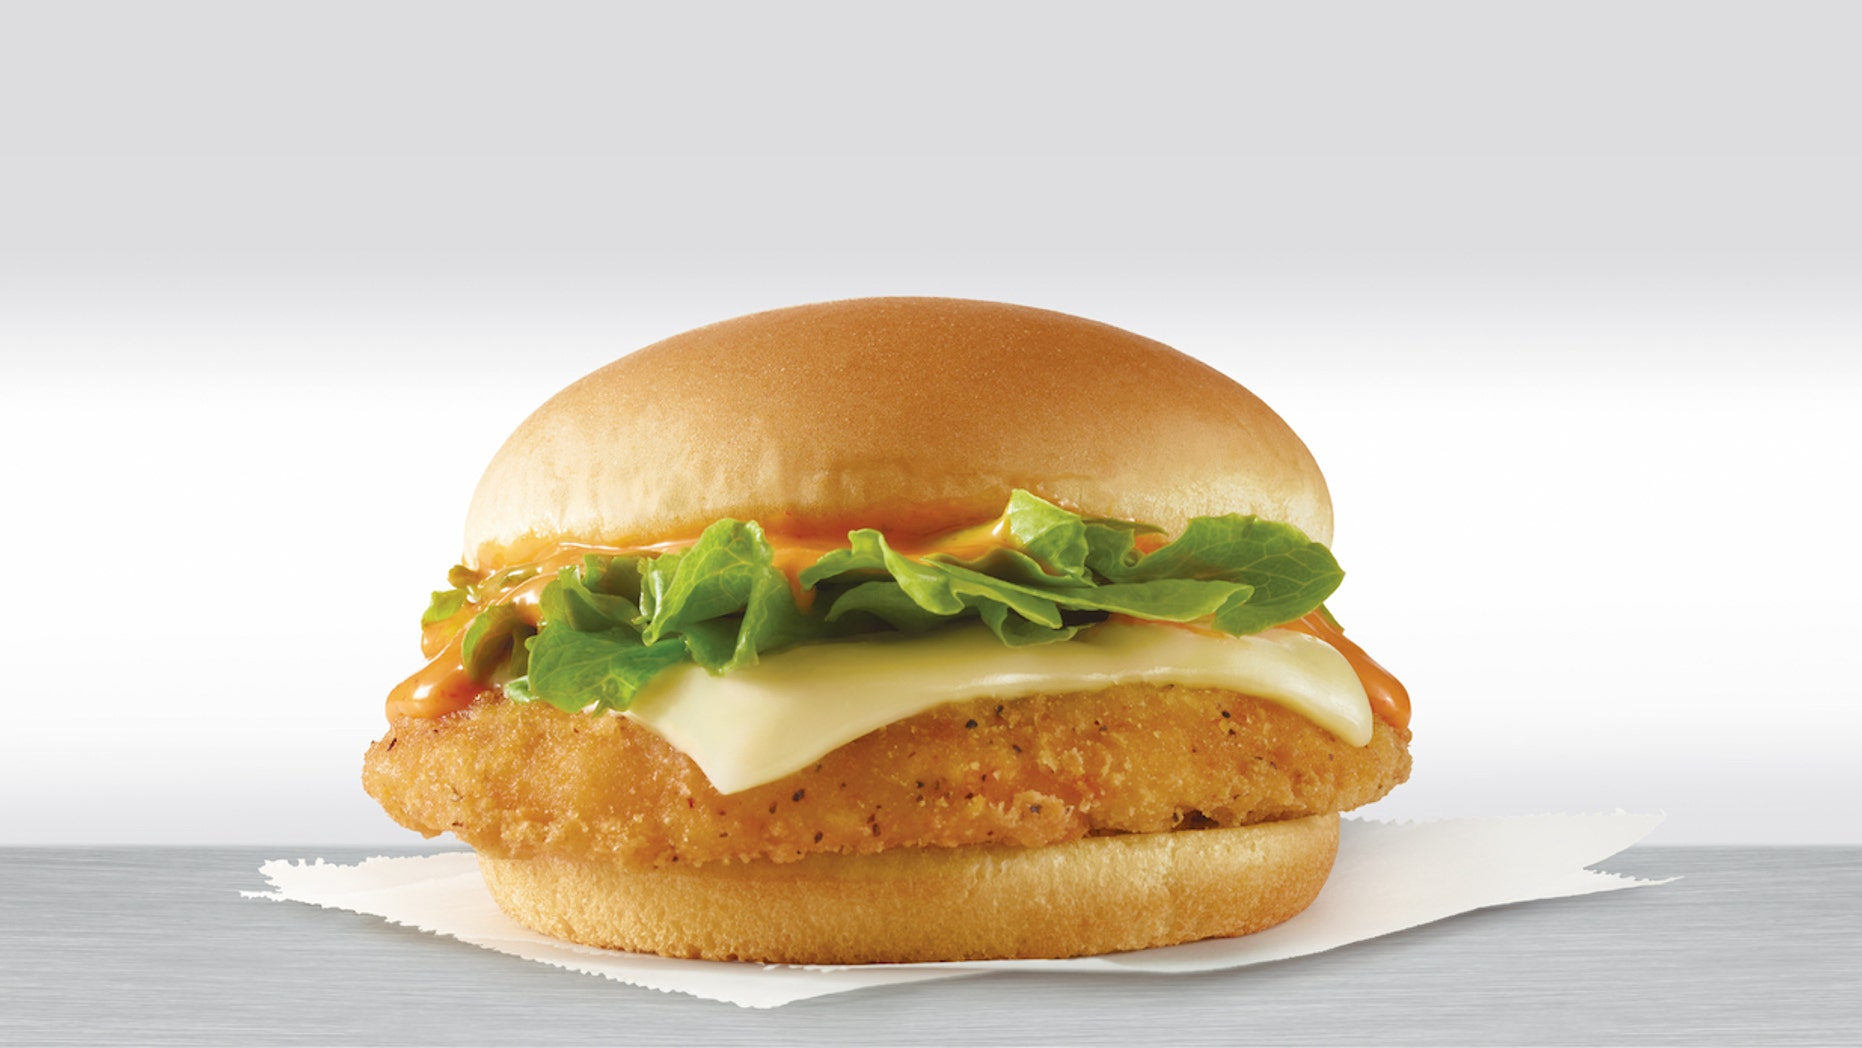 The new sandwich will set you back just a buck starting this month.